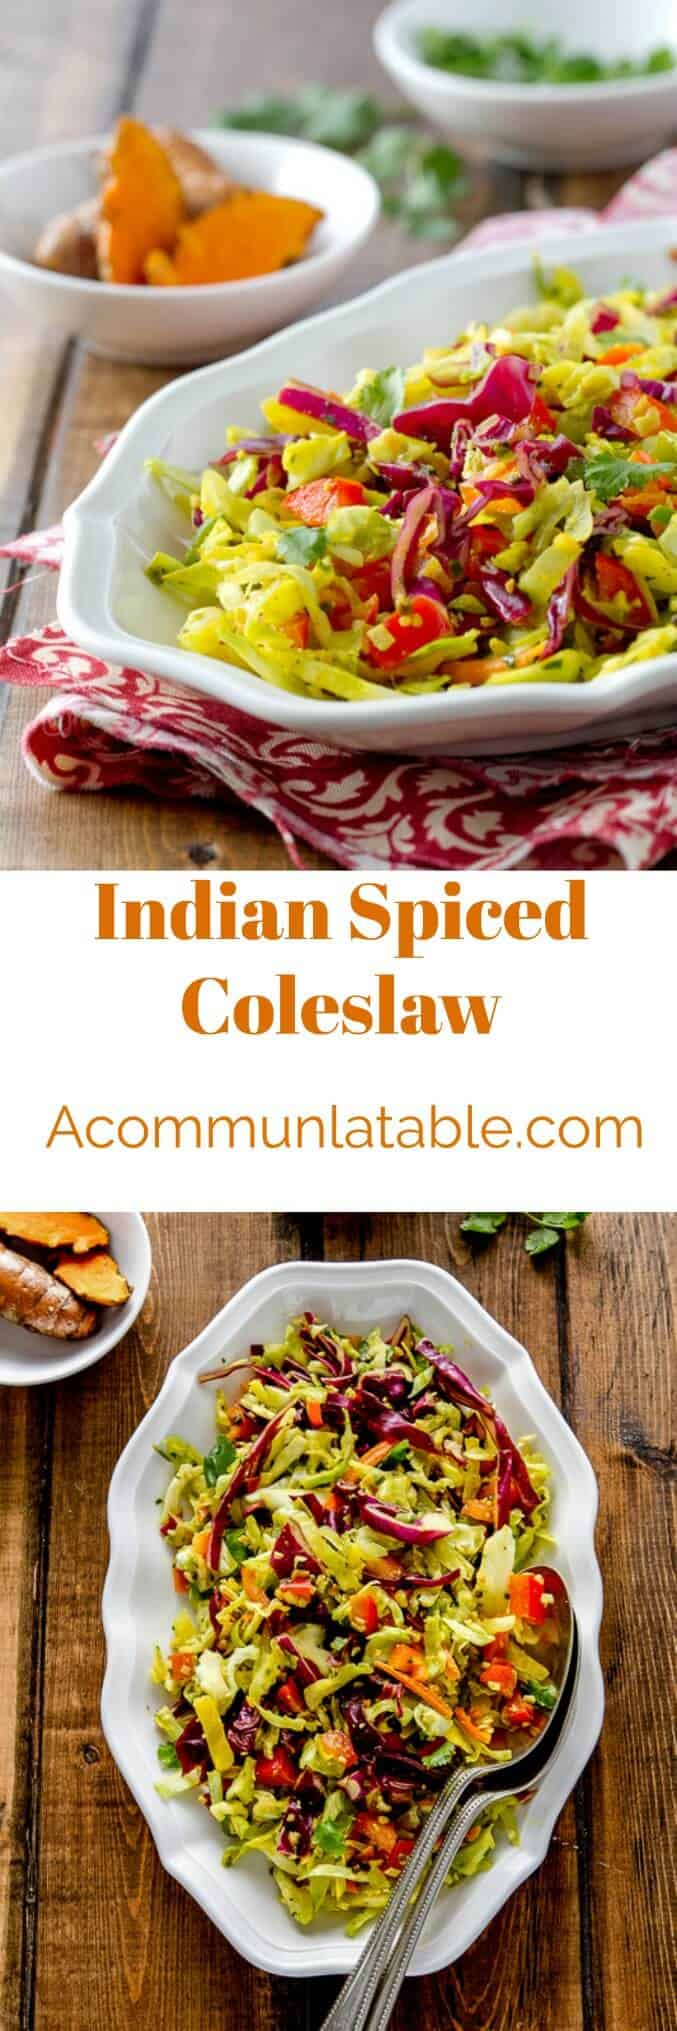 Indian spiced coleslaw is a healthy, no mayo recipe with a lovely turmeric spiced dressing that goes with almost anything!